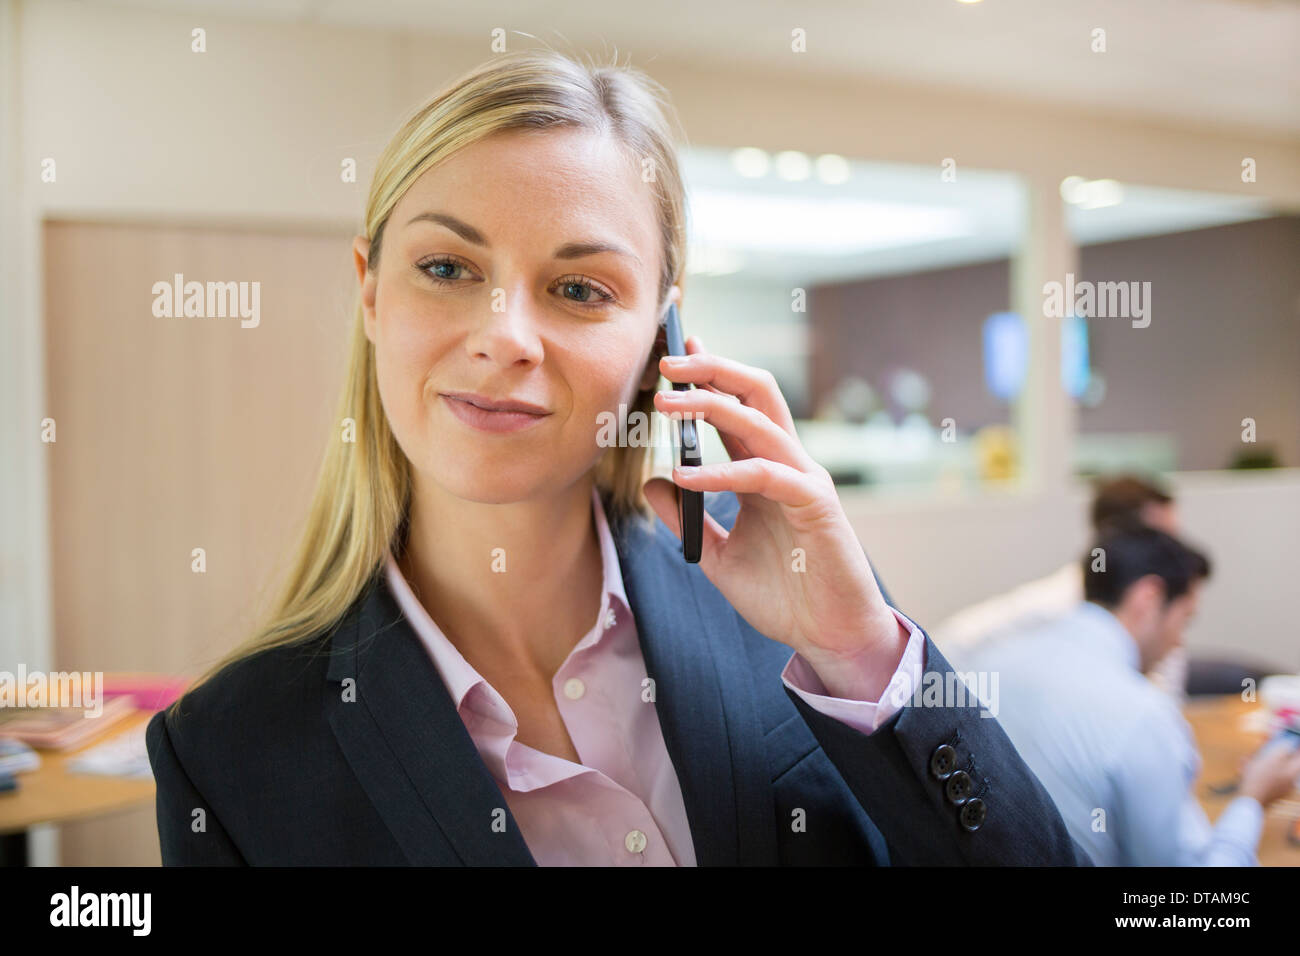 Businesswoman telephoning in her office Stock Photo